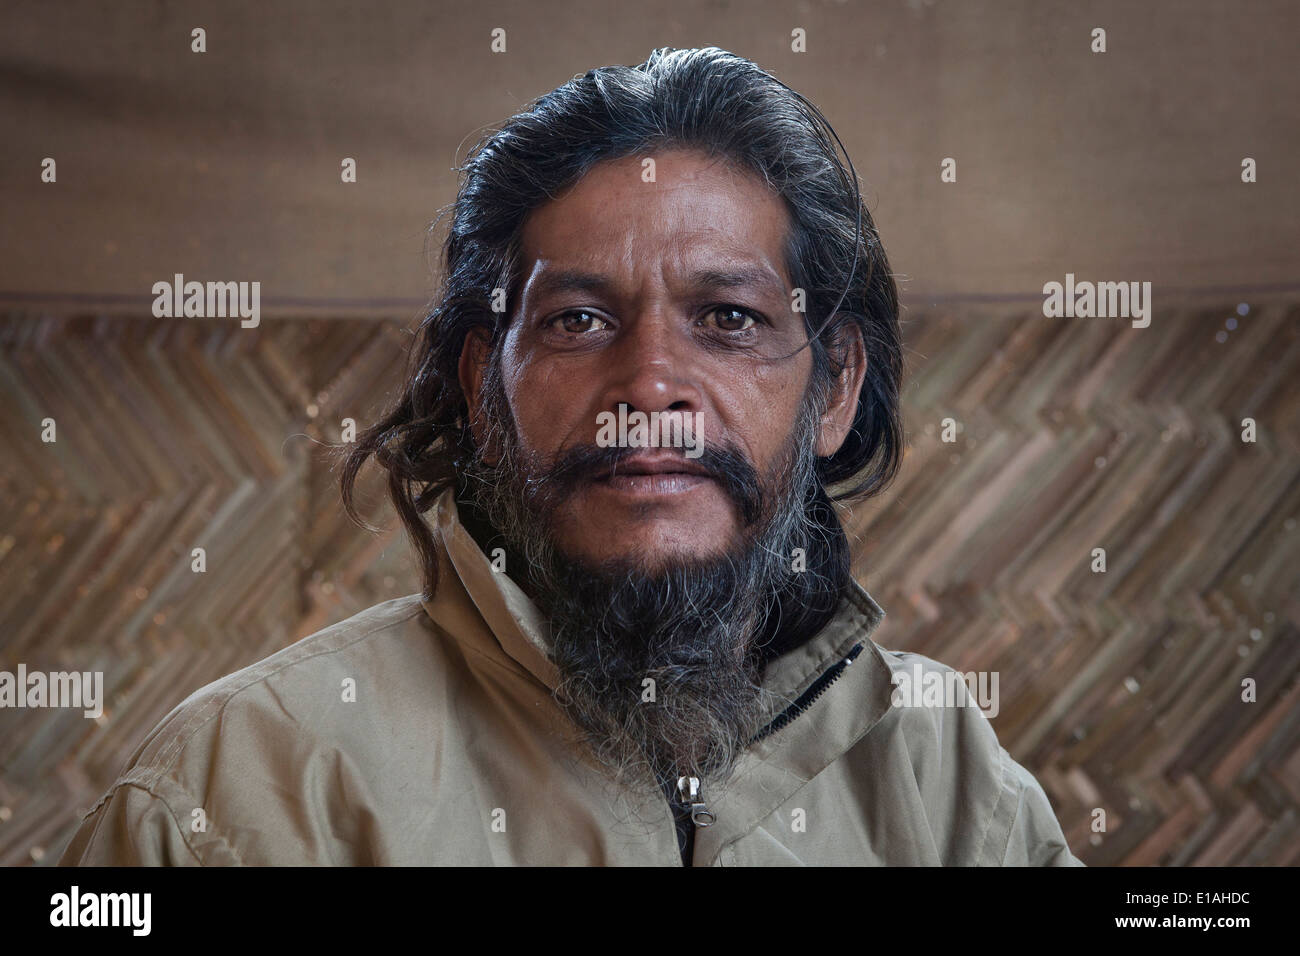 Portrait of a local man at the Kumbh Mela 2013 in Allahabad, India Stock Photo